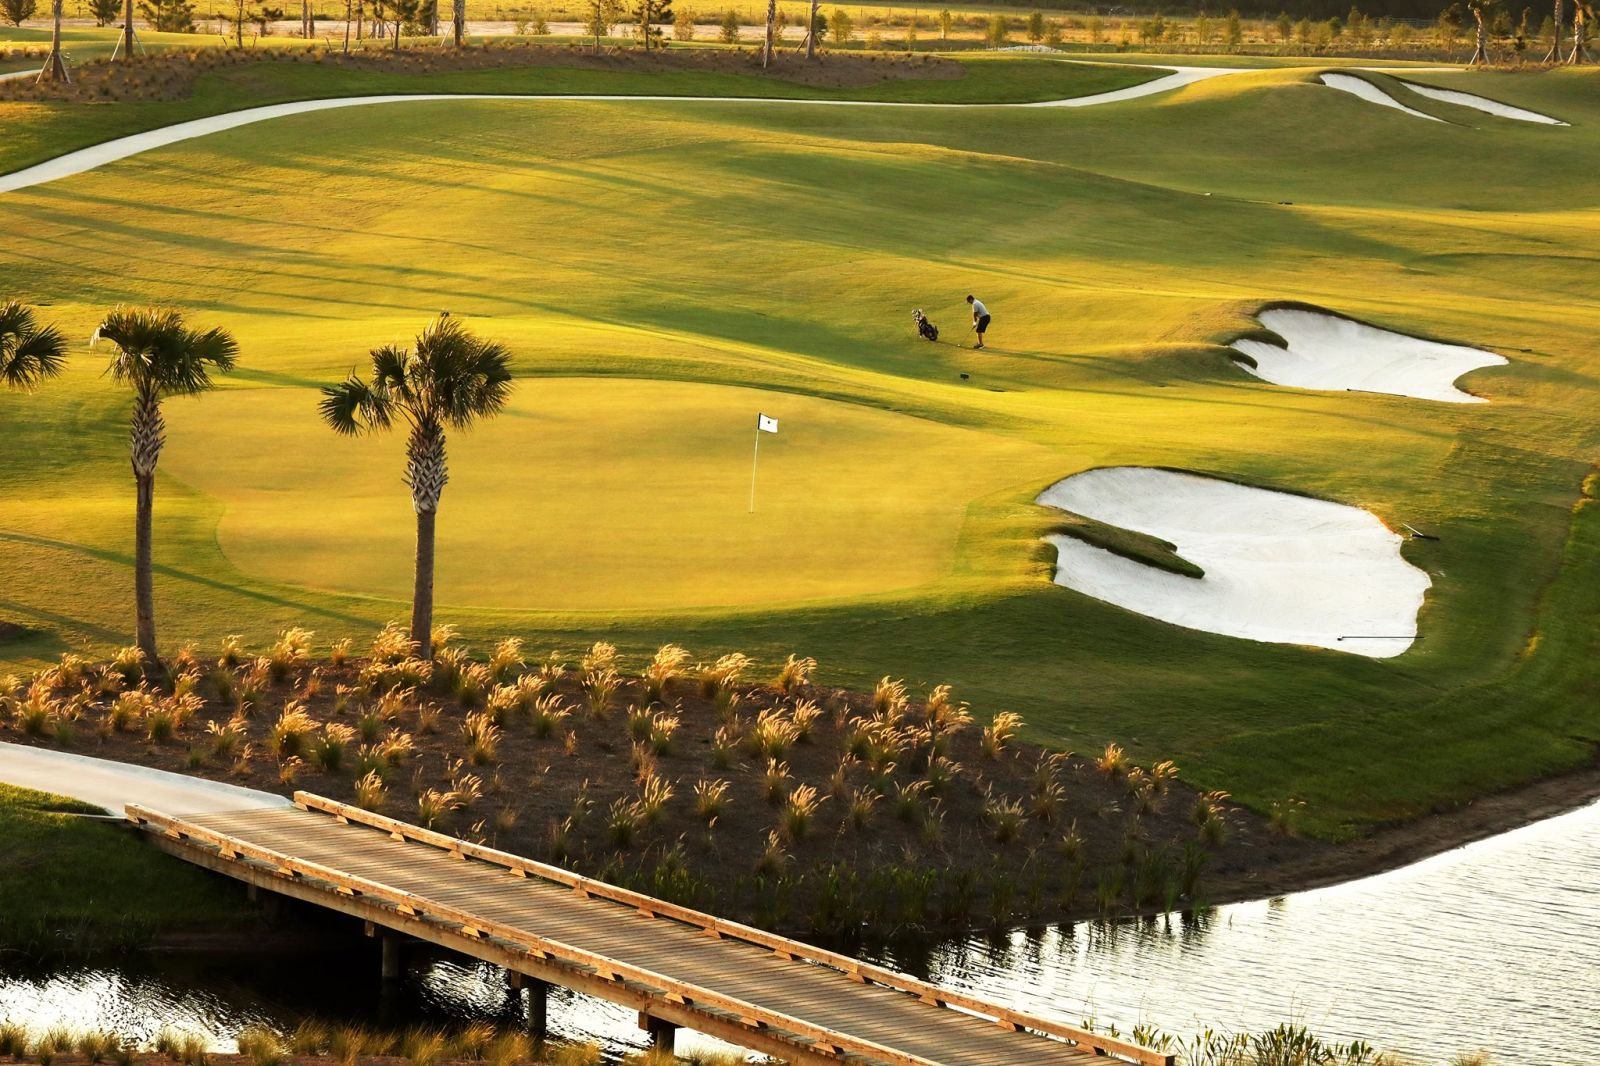 Lakewood National Golf Club, located near Sarasota, Florida